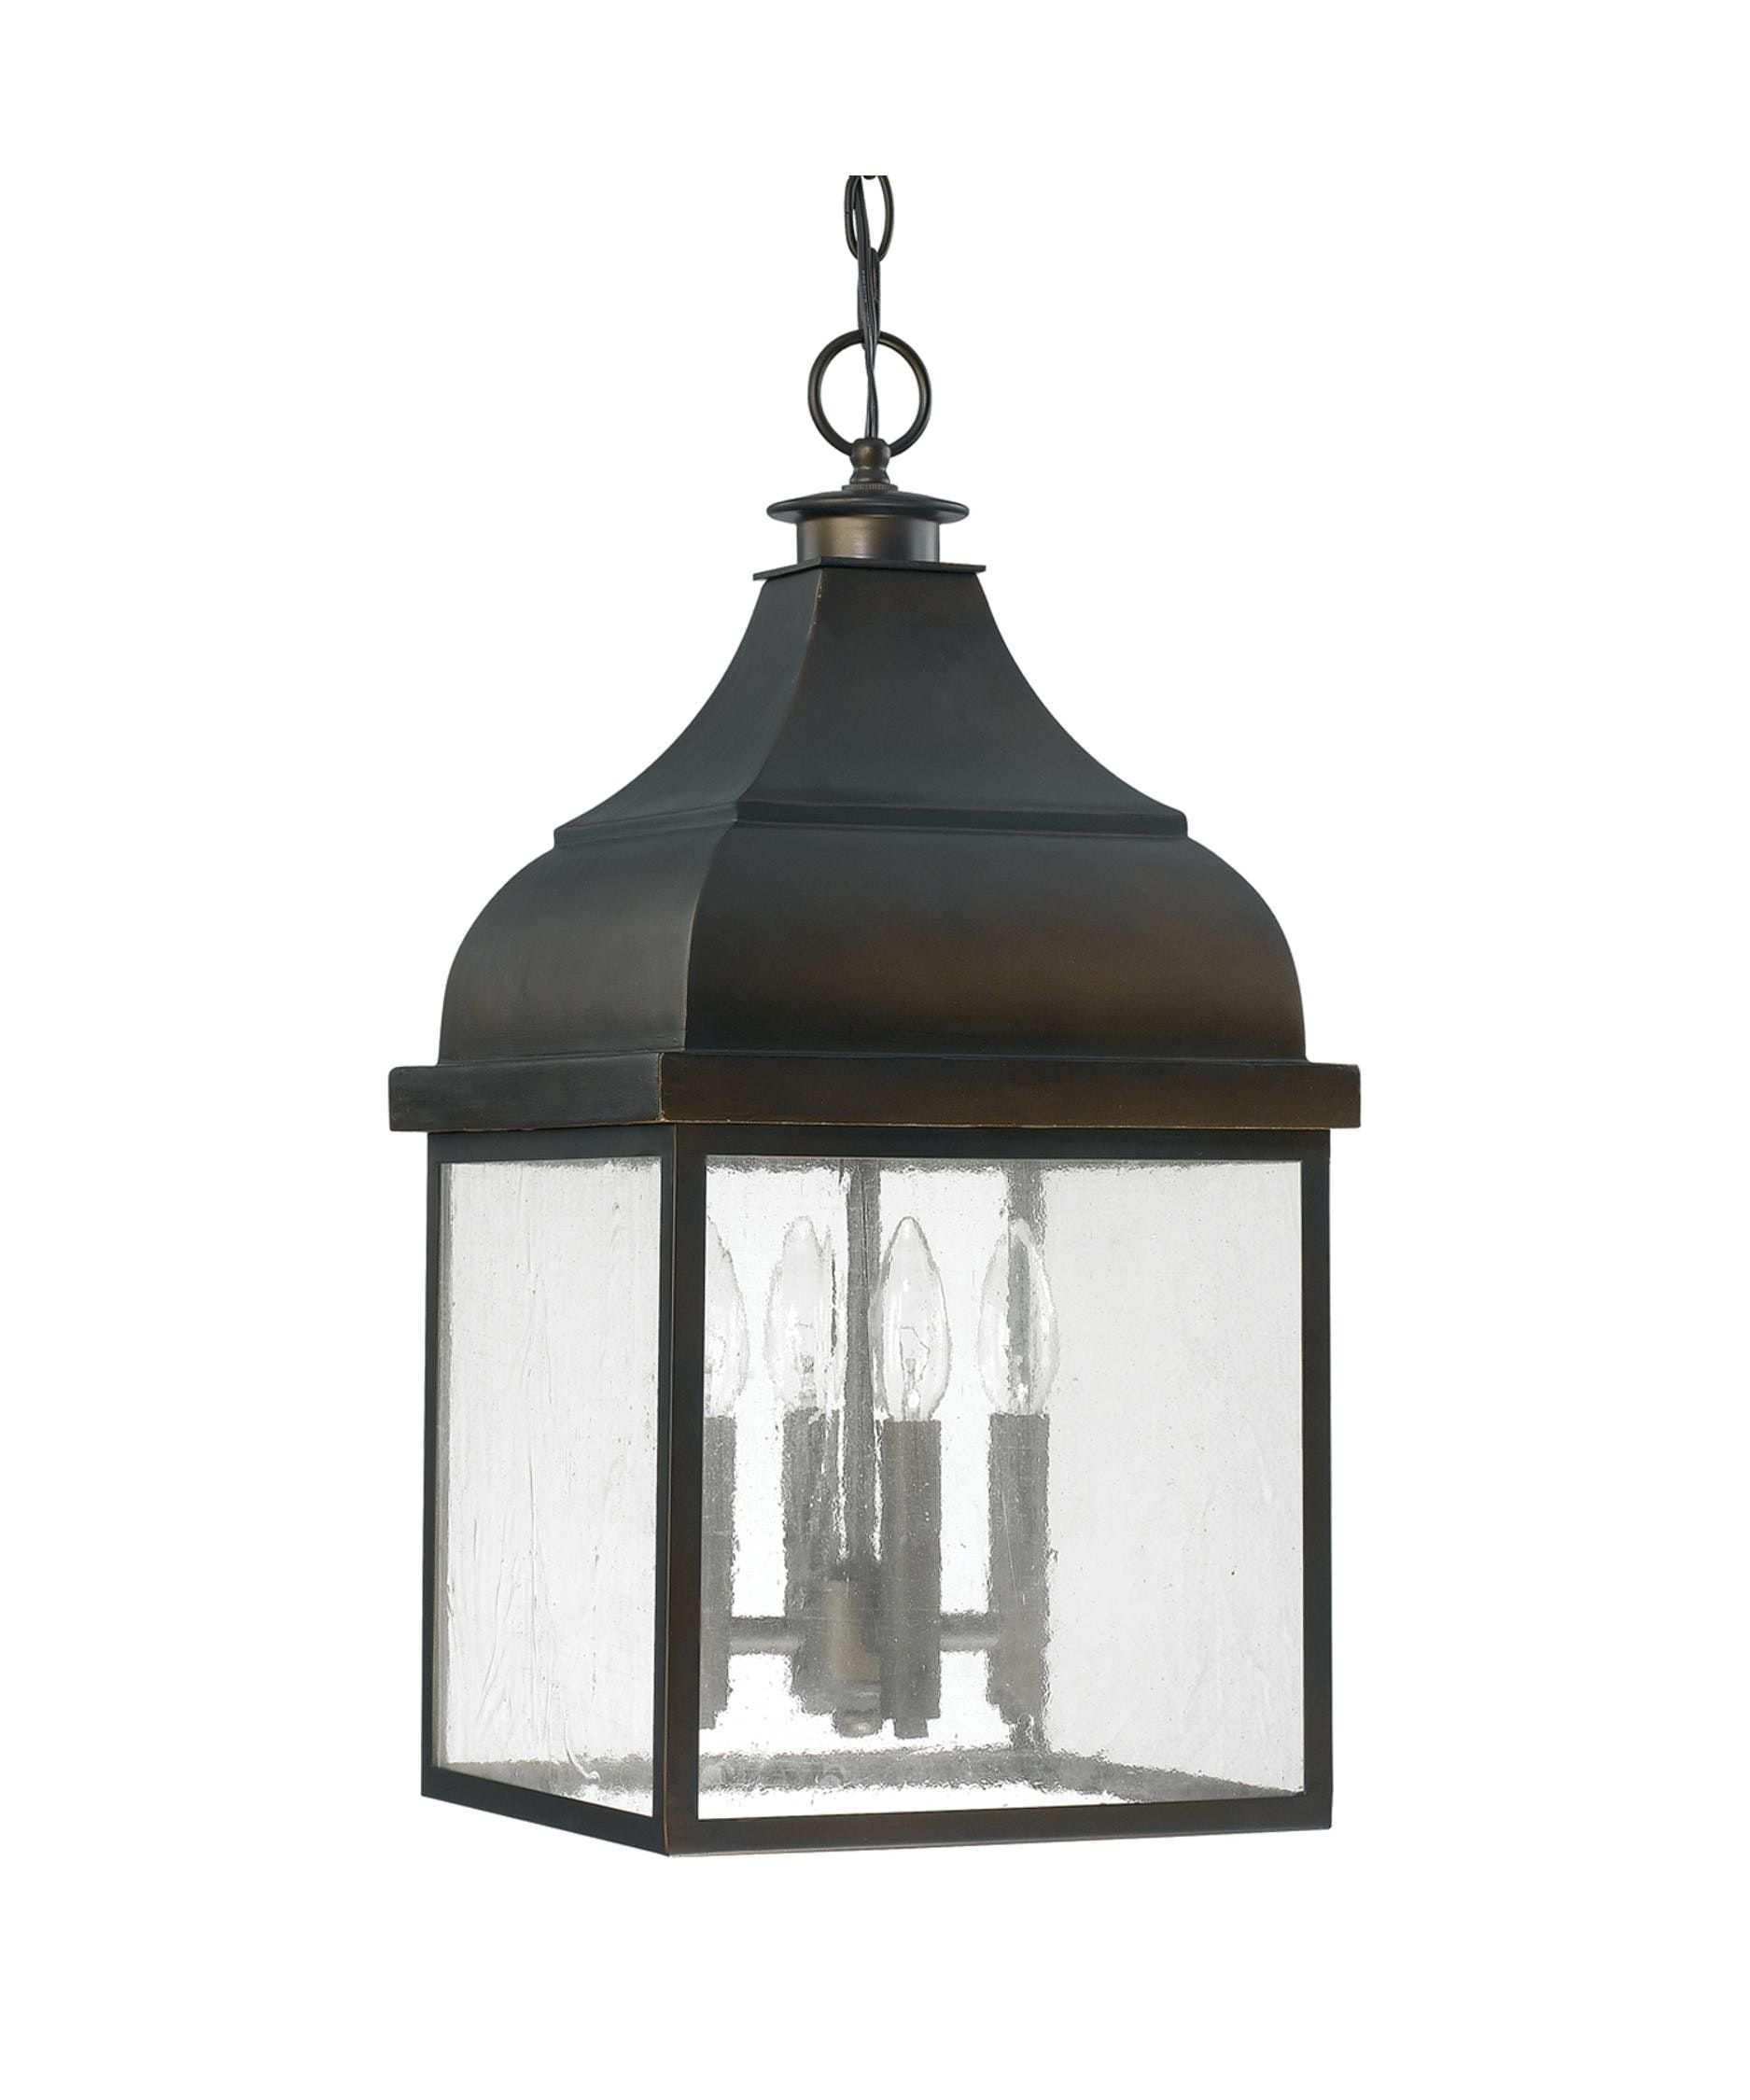 Popular Photo of Wayfair Outdoor Hanging Lighting Fixtures